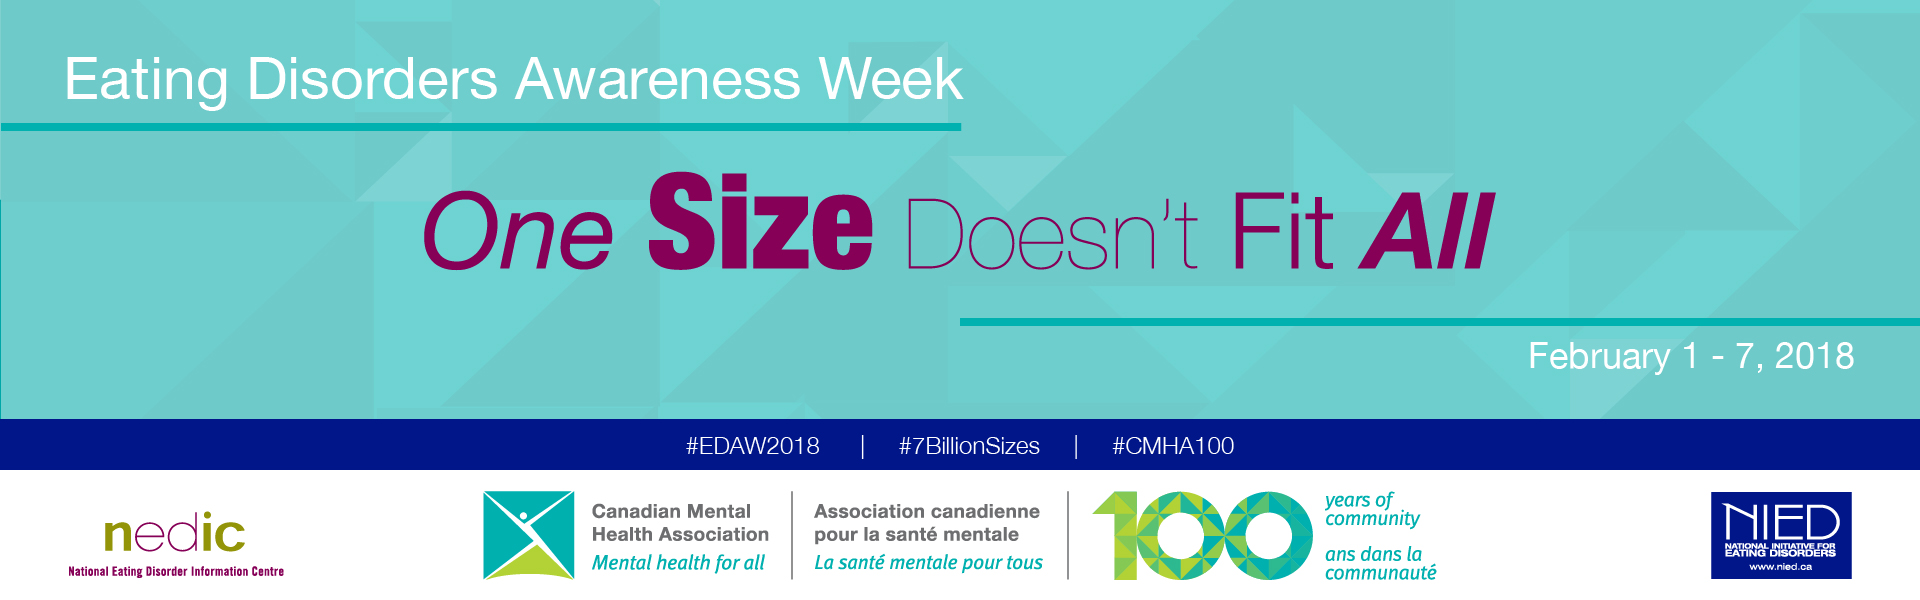 CMHA observes Eating Disorders Awareness Week, February 1-7, 2018